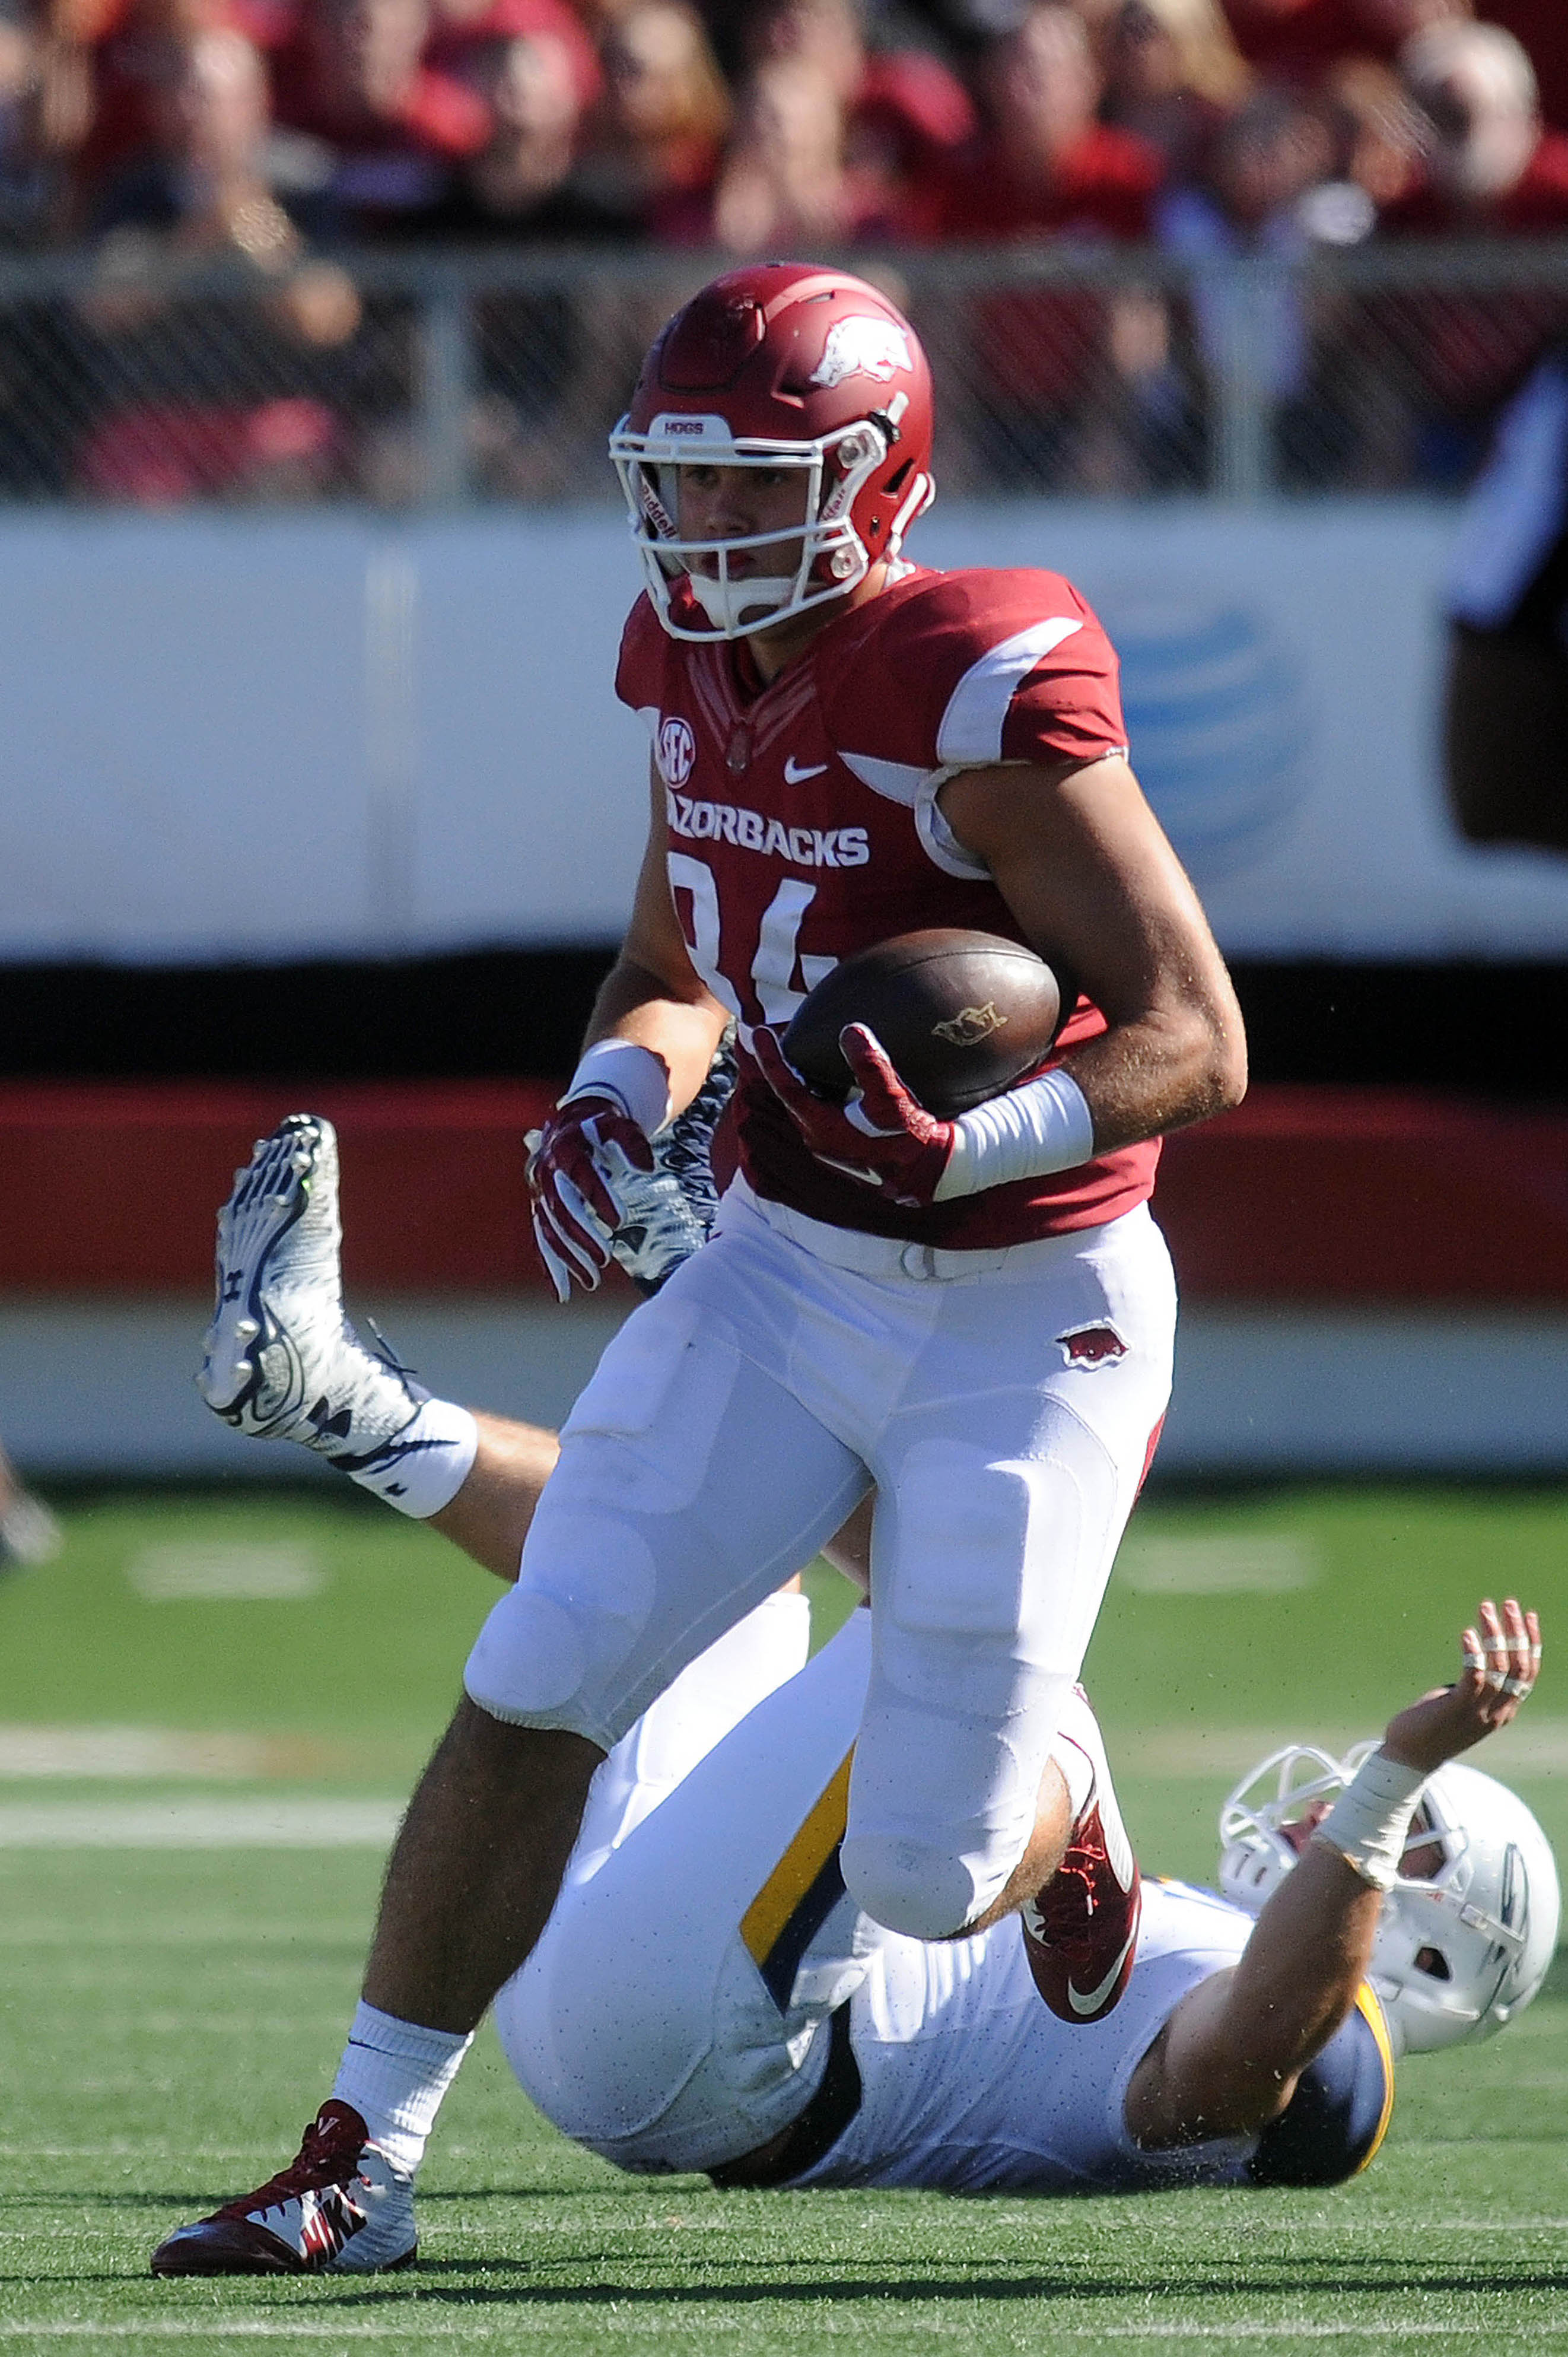 Keep Hunter Henry in check, allow the line to shut down Arkansas' run game, pick apart their secondary... profit.